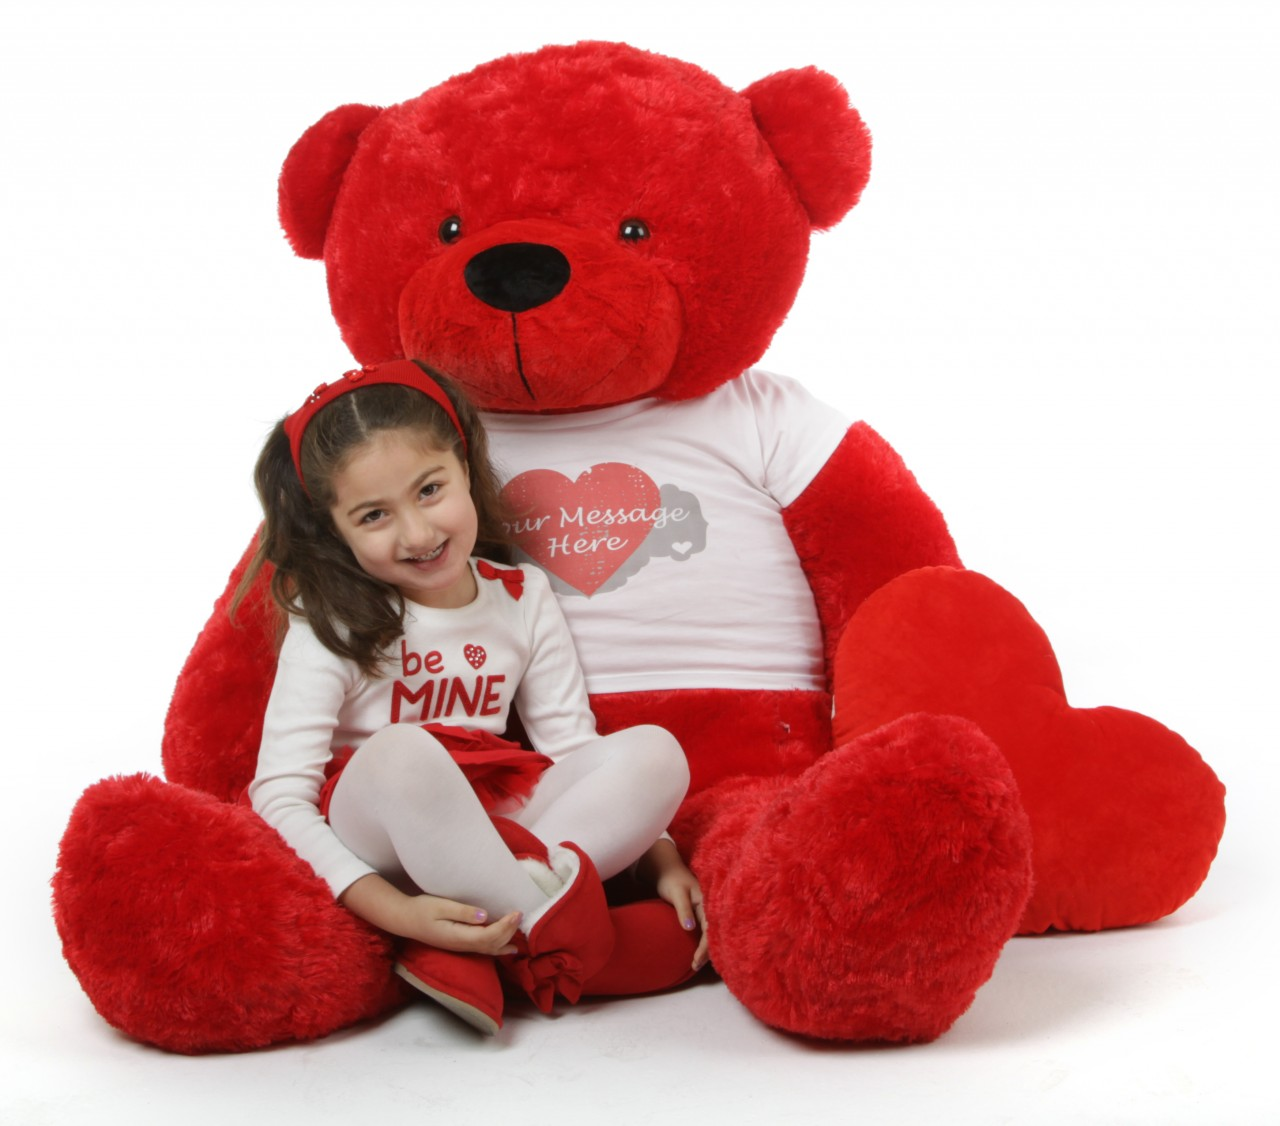 Red Teddy Bear 5 Feet, Red Hot Valentine 55in Bitsy Cuddles With Heart T Shirt A Giant Personalized Teddy Bear